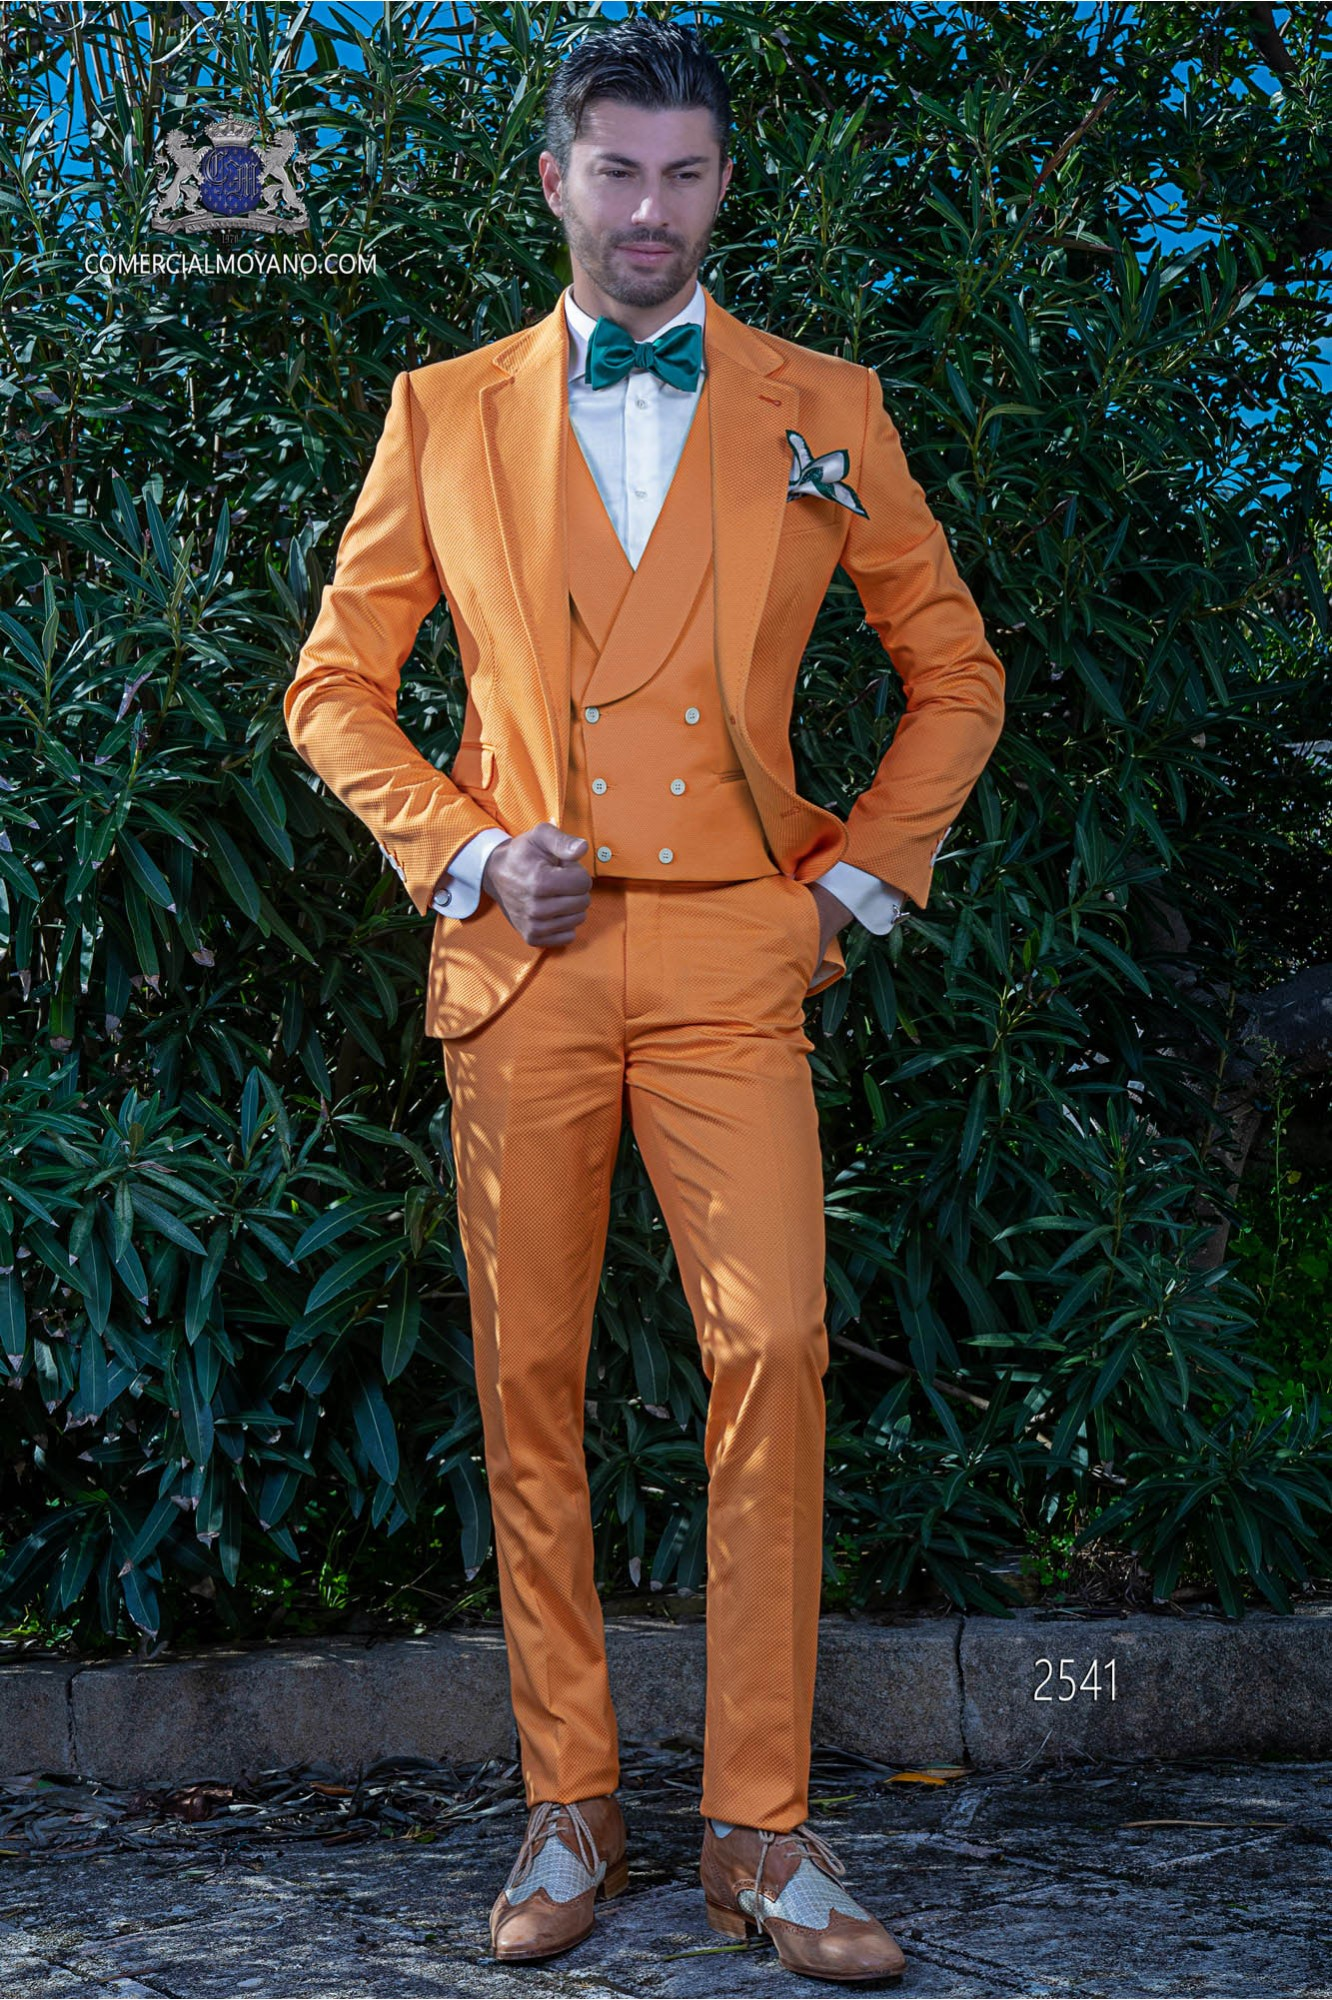 Italian orange pure cotton wedding suit microdesign fabric